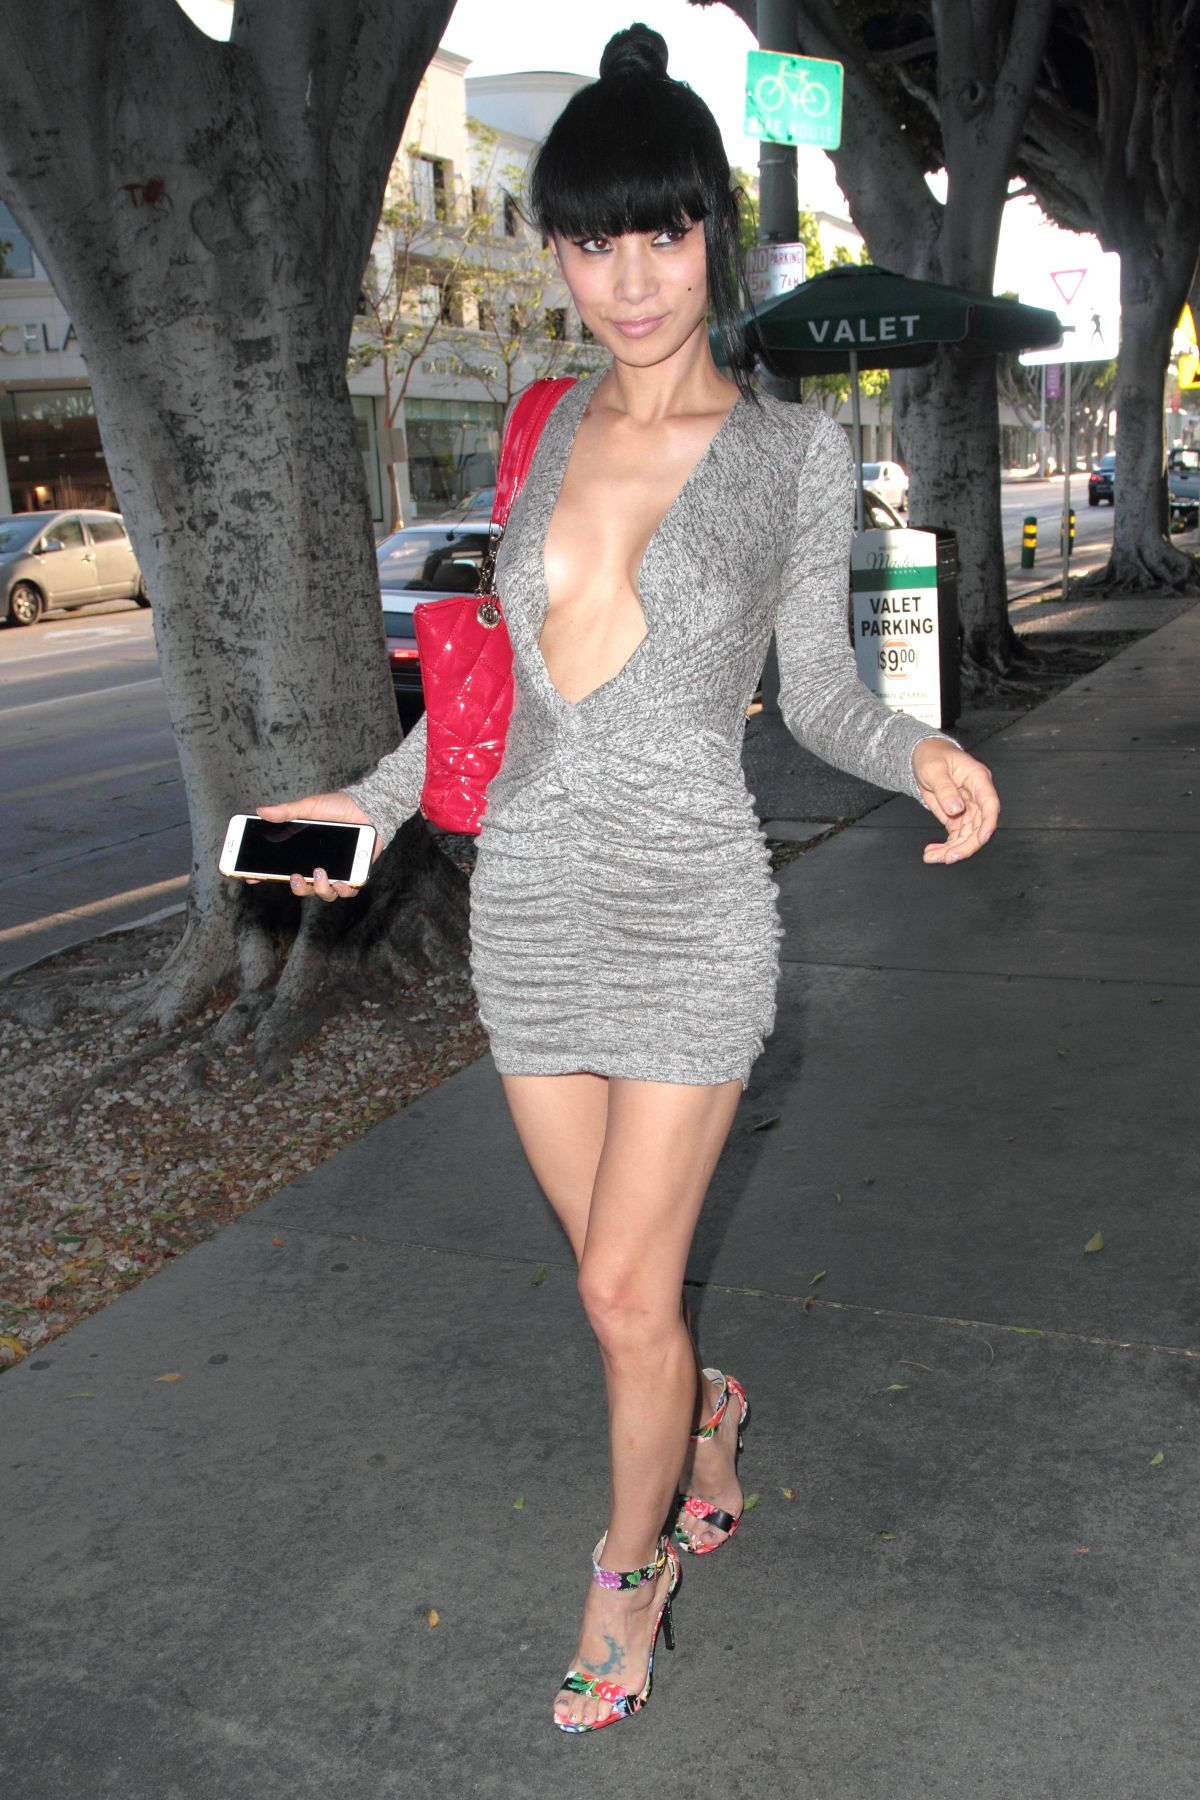 Bai Ling nudes (93 photos), hot Pussy, Snapchat, butt 2017